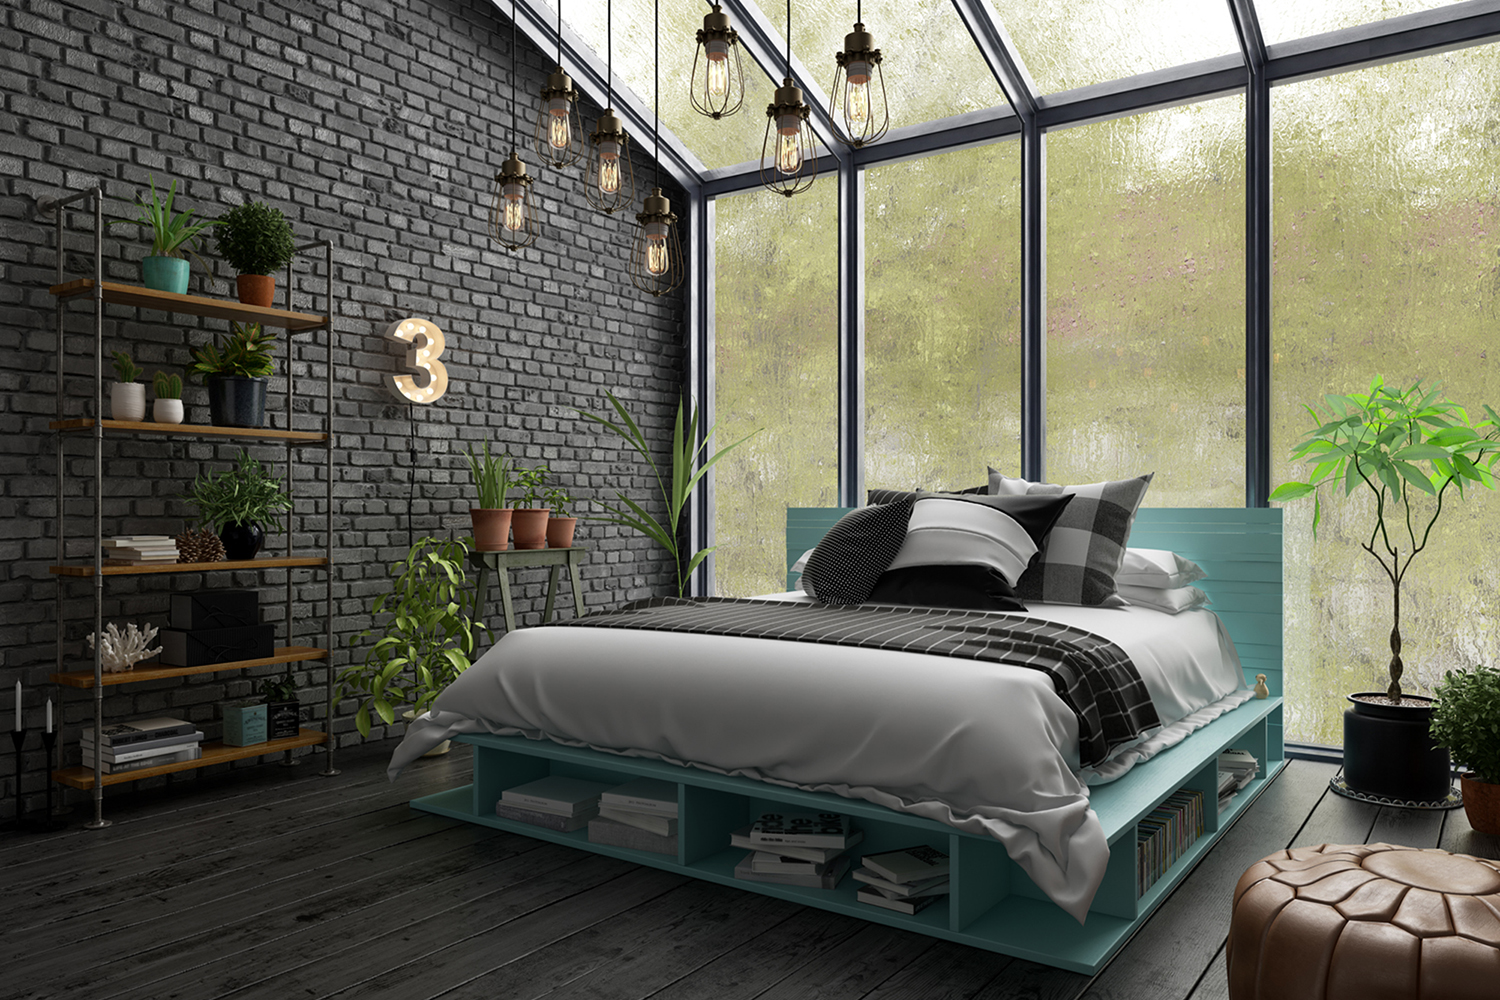 Bedroom interior design 3 D rendering